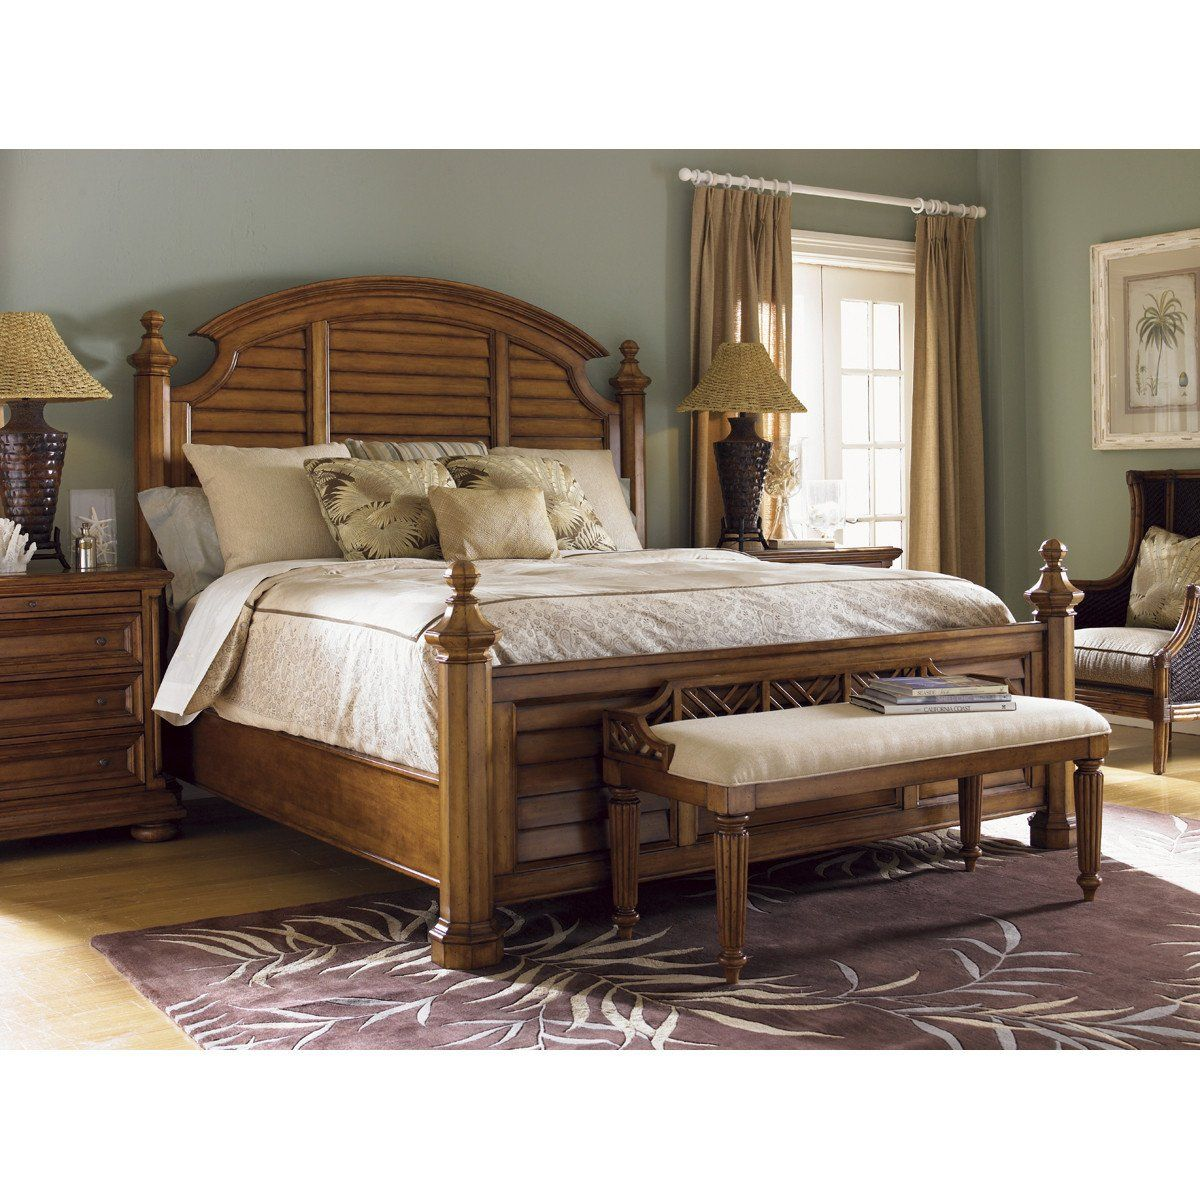 Tommy Bahama Island Estate Plantain Bed Bench Bedroom in